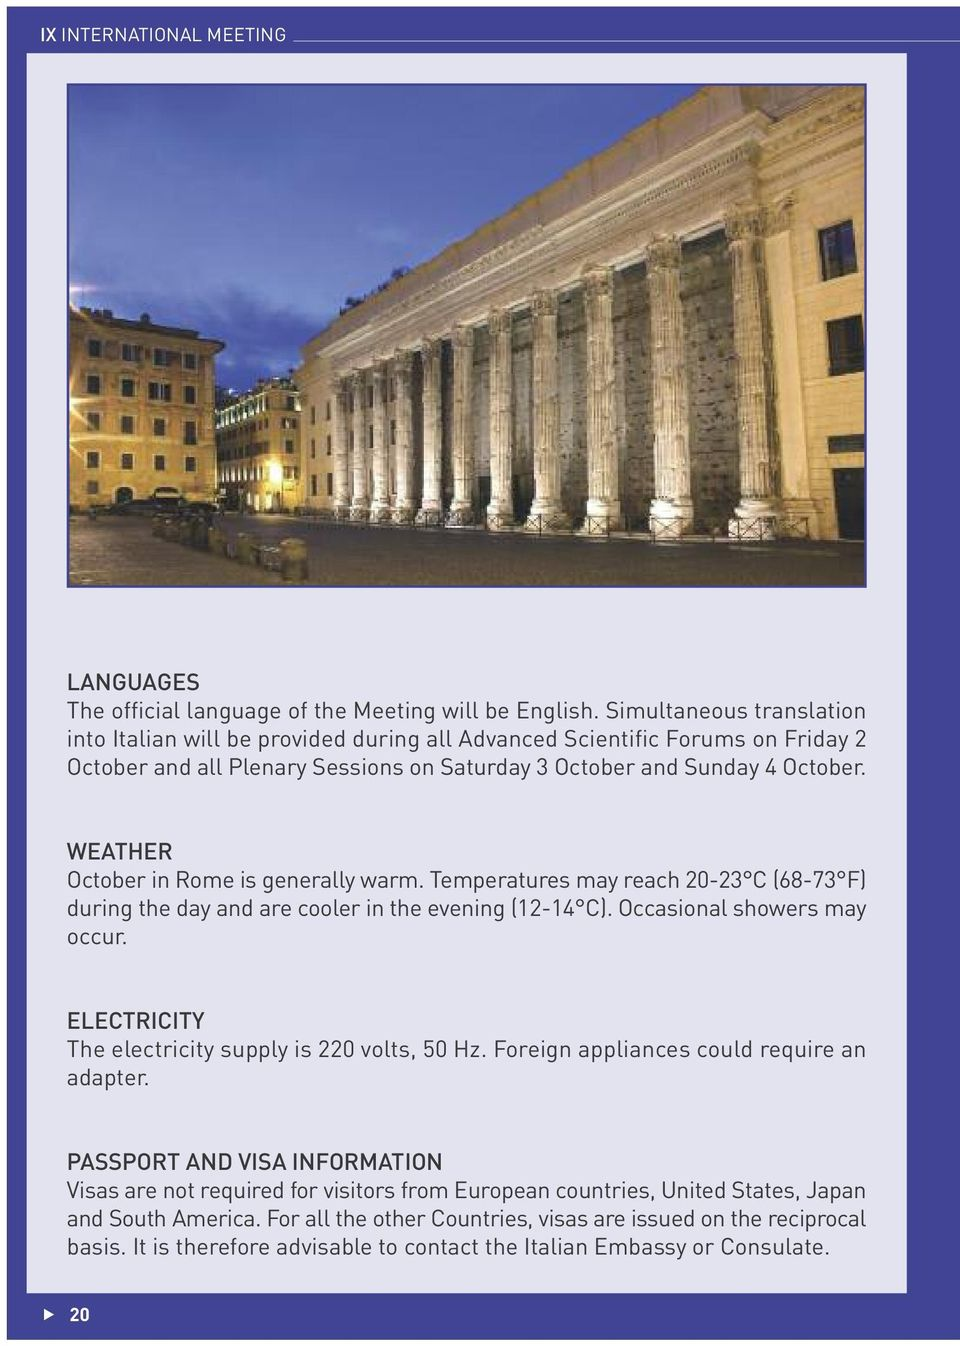 WEATHER October in Rome is generally warm. Temperatures may reach 20-23 C (68-73 F) during the day and are cooler in the evening (12-14 C). Occasional showers may occur.